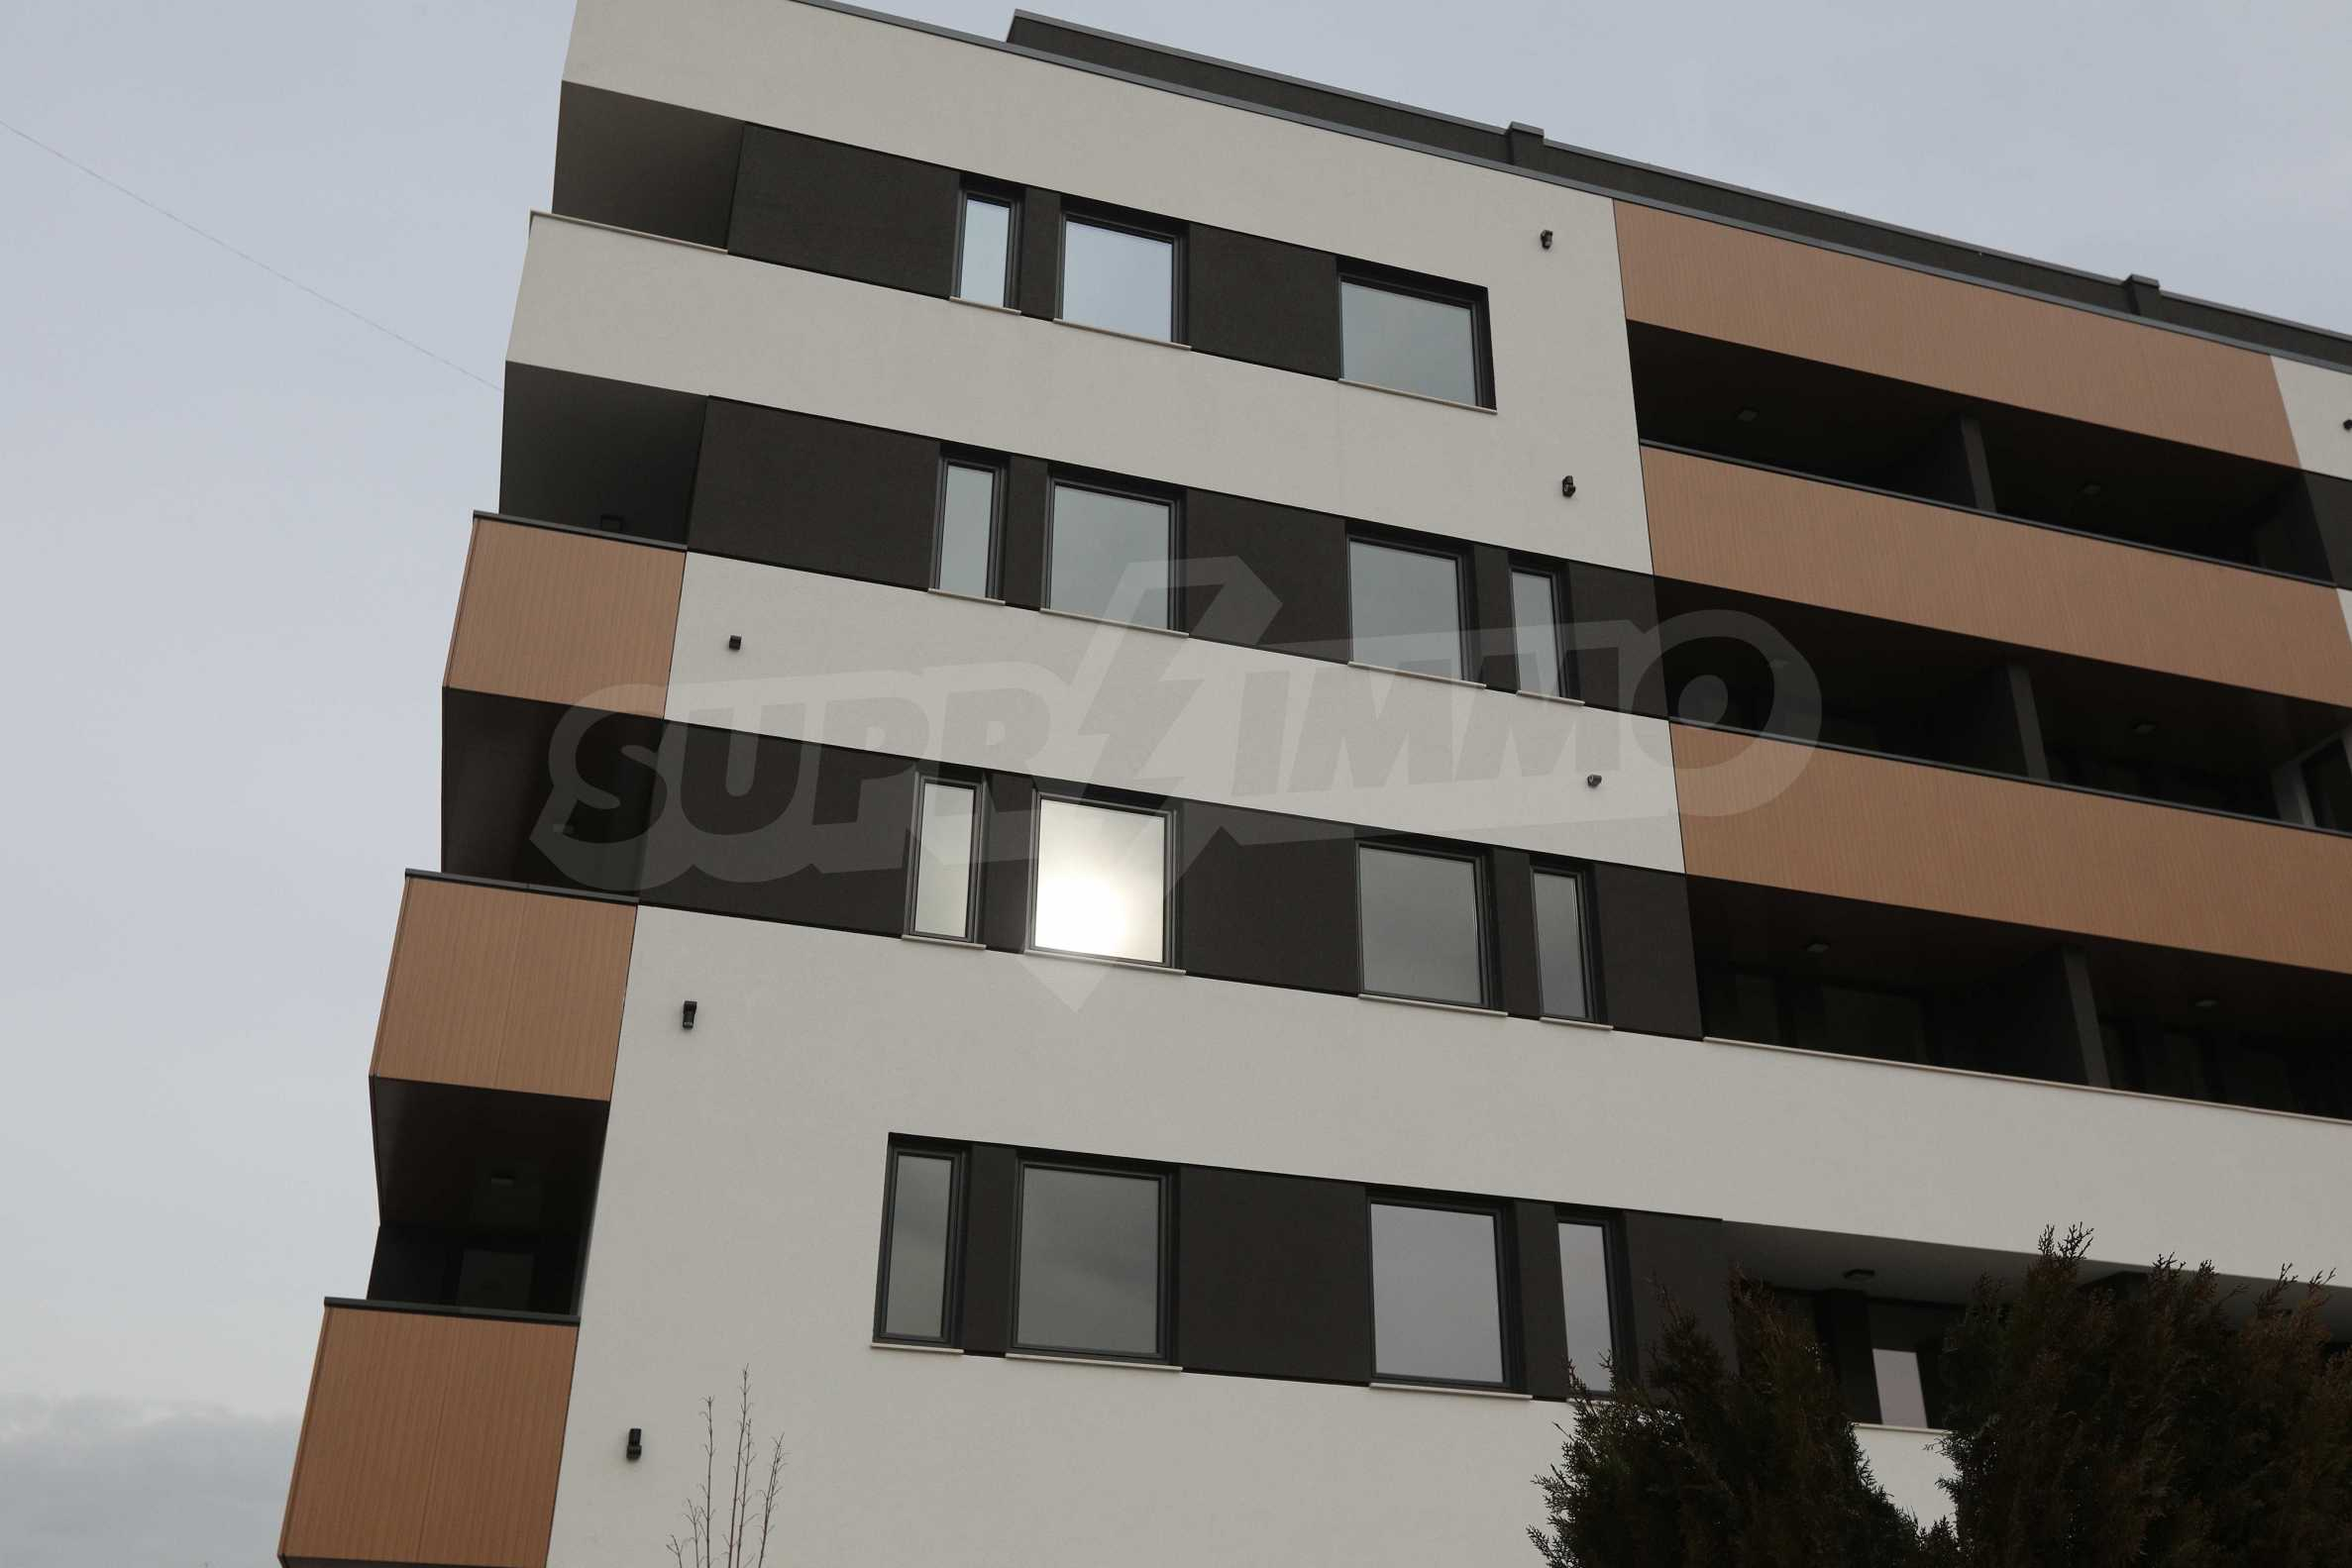 Shops, garages & parking spaces for sale in Comfort - Ovcha Kupel - new building near metro station 17